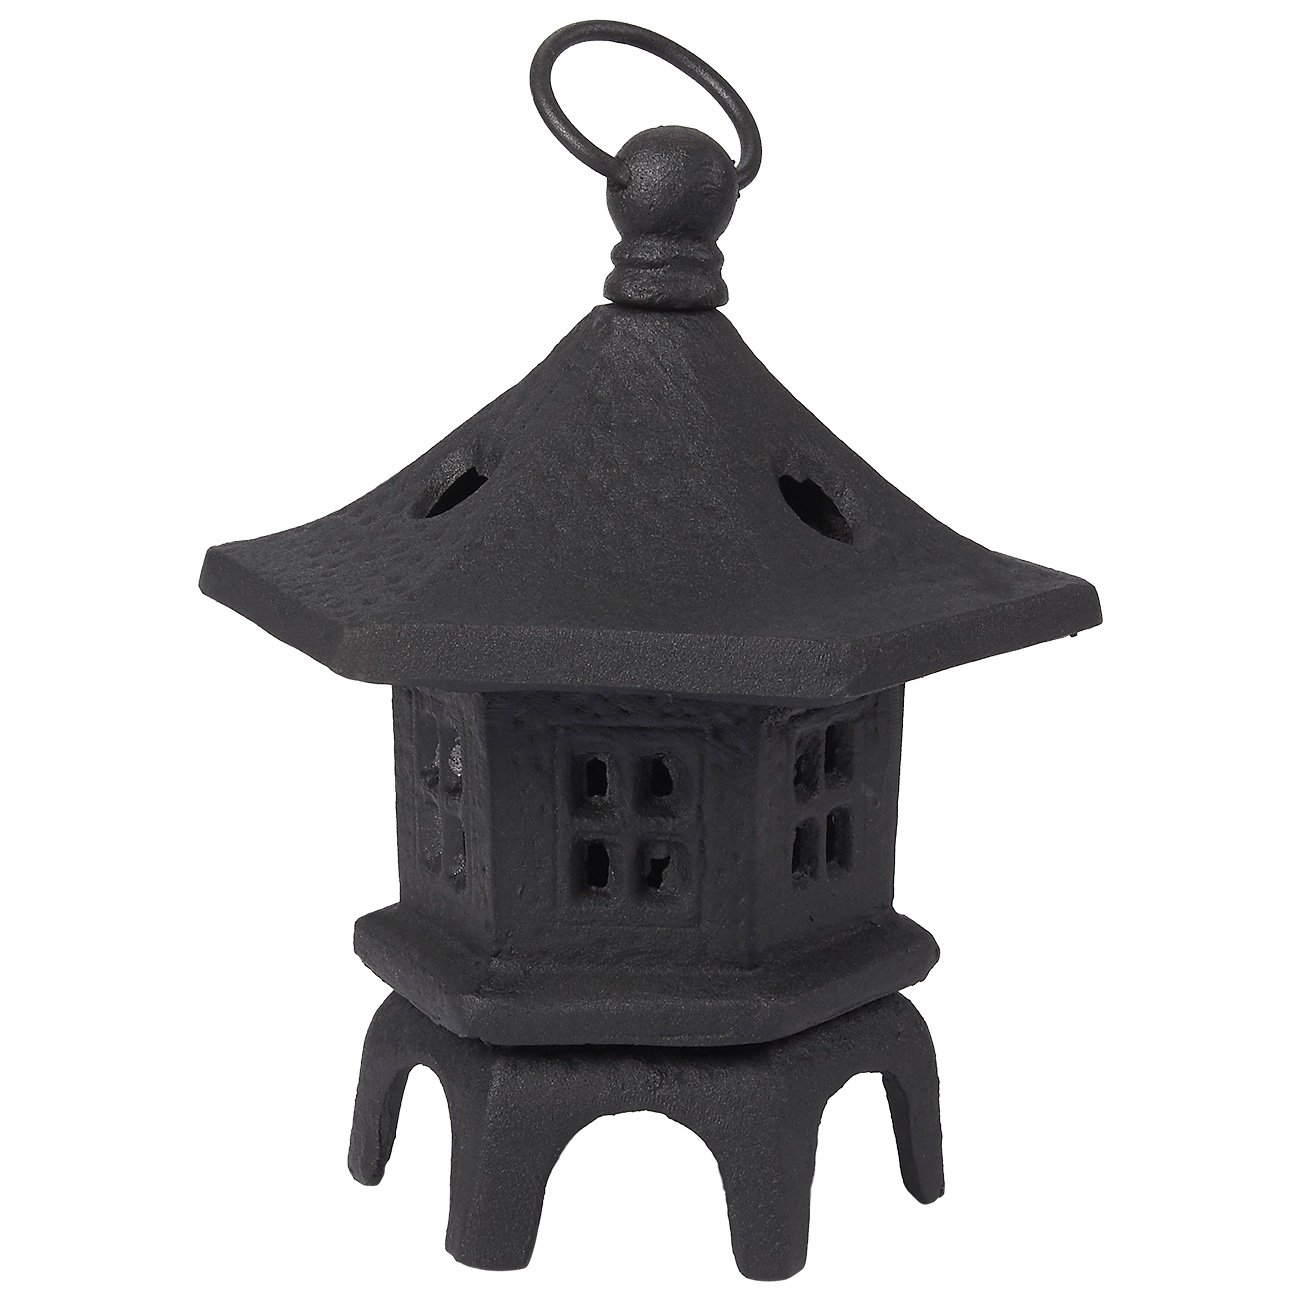 Juvale Rustic Iron Lantern Candle Holder, Vintage Hexagonal Candle Centerpiece, Tealight Candle Table Decoration for Living Room, Dining Area, and Garden, Charcoal, 5.9 x 5.9 x 7.3 inches